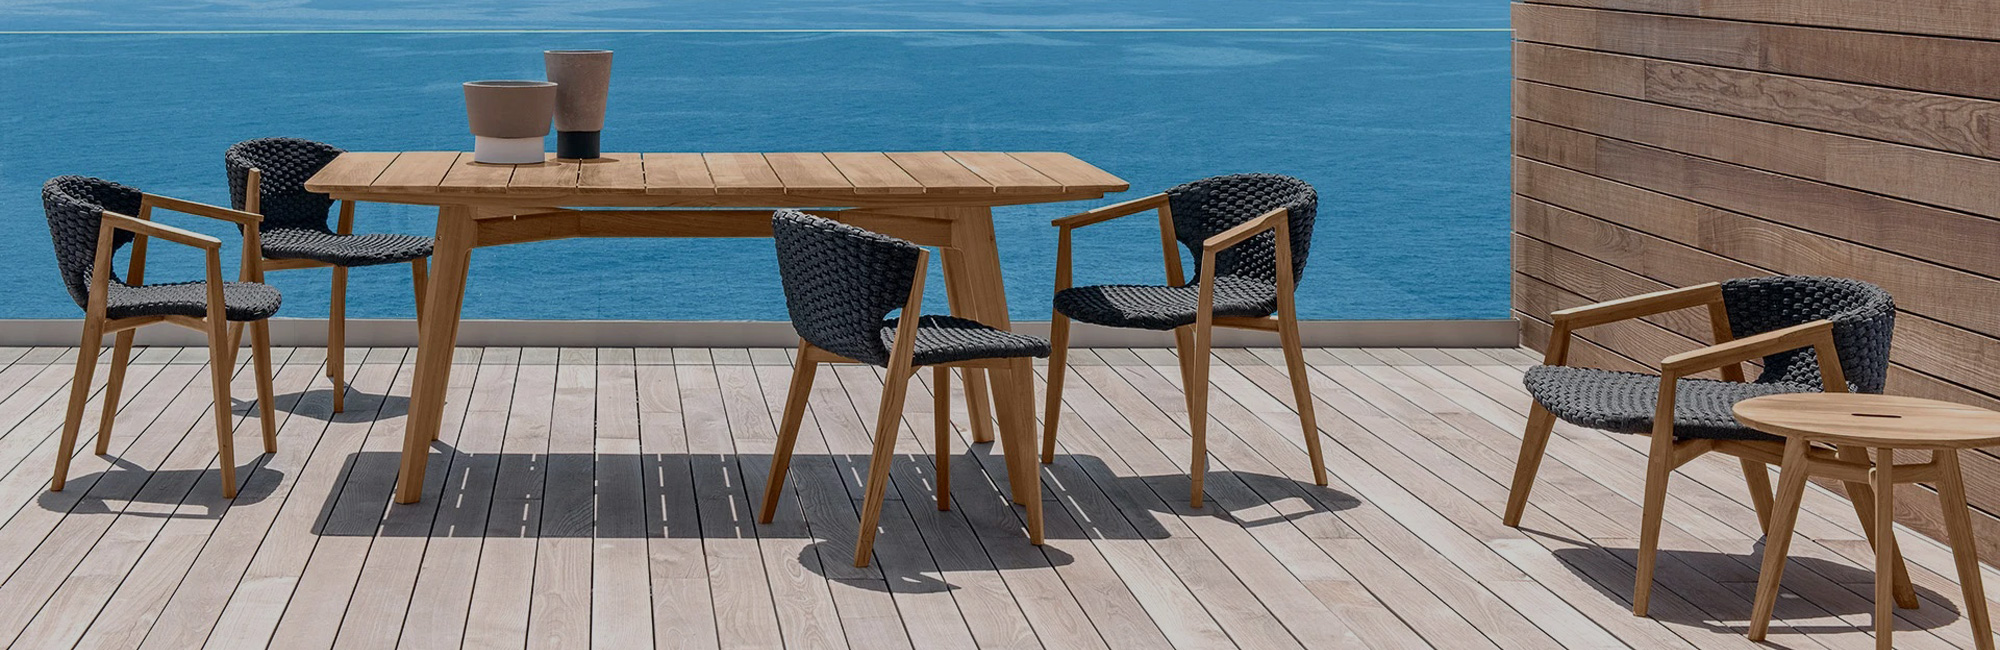 Ethimo Outdoor Furniture by FCI London